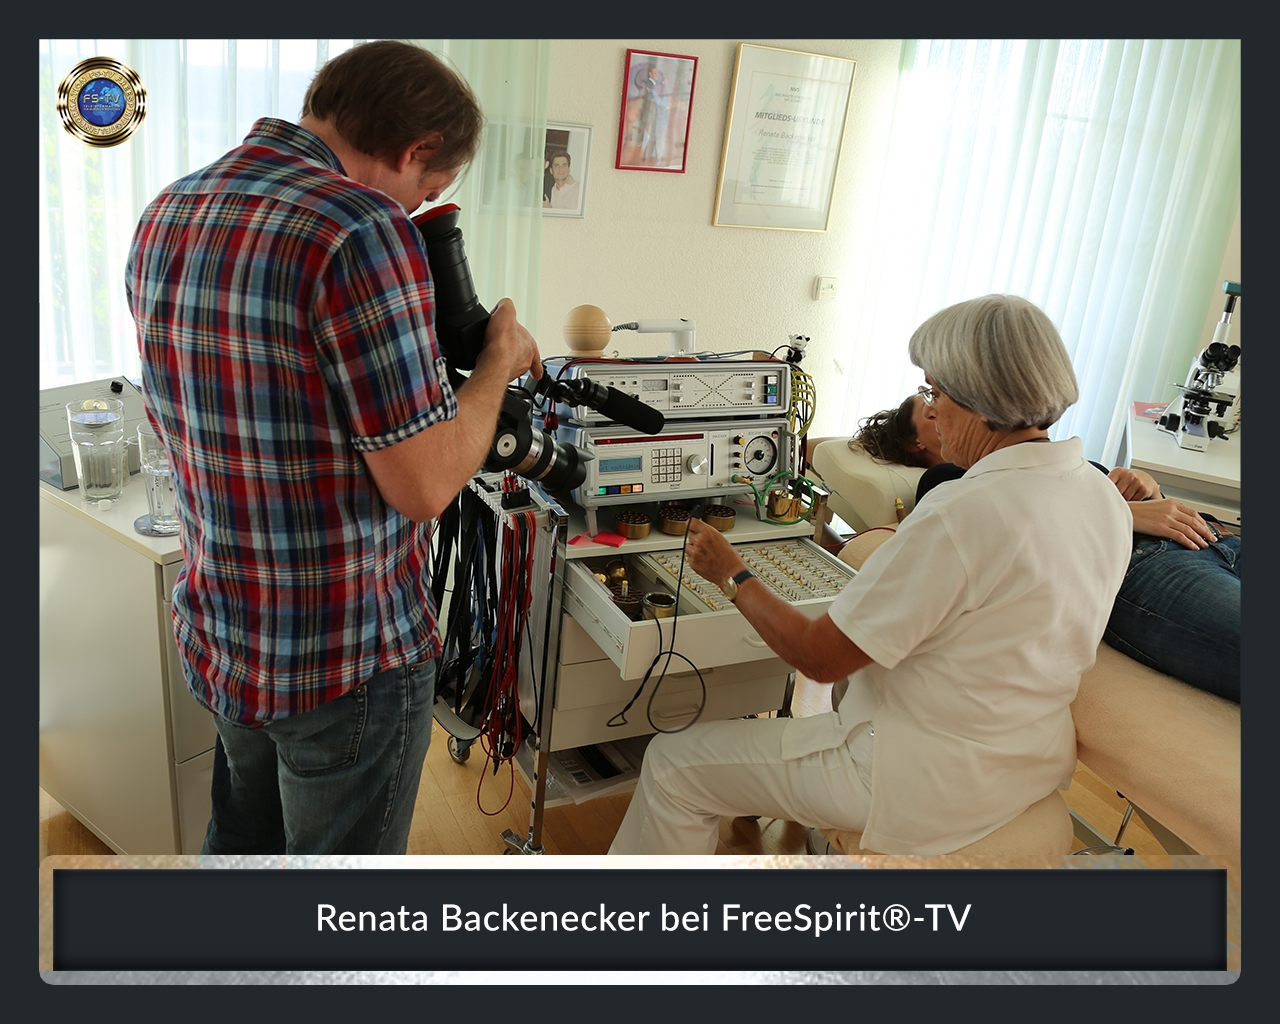 FS-TV-Bildergallerie-Renata-Backenecker-Best of